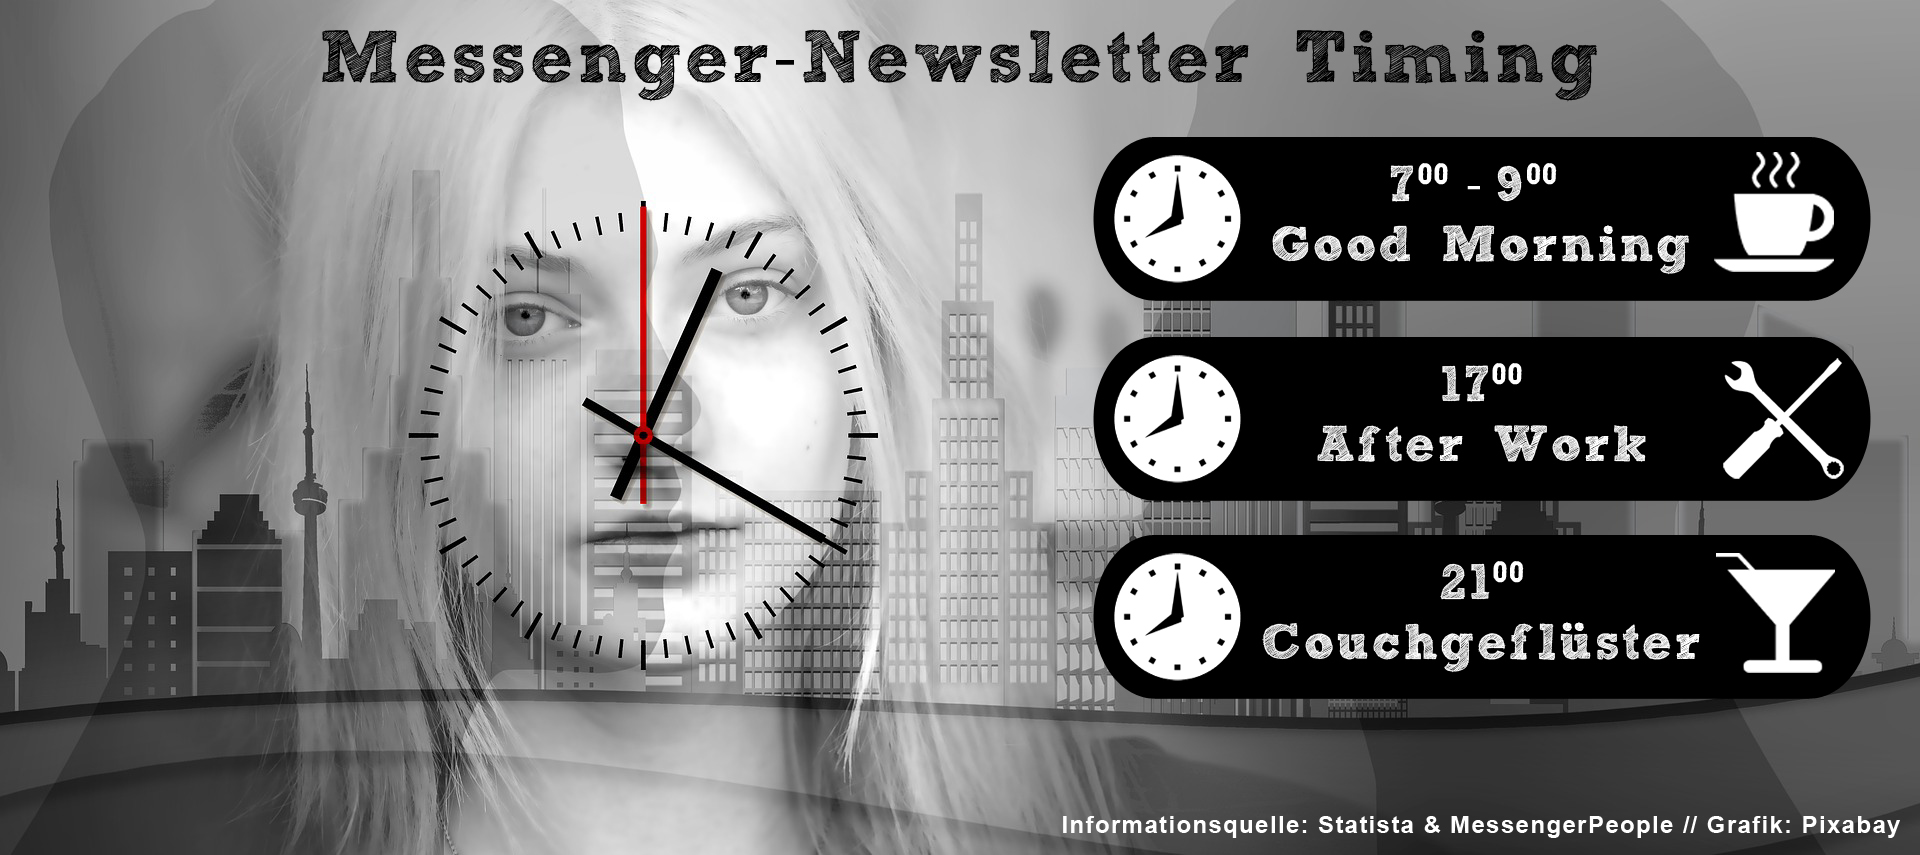 Schaubild: Messenger-Newsletter Timing